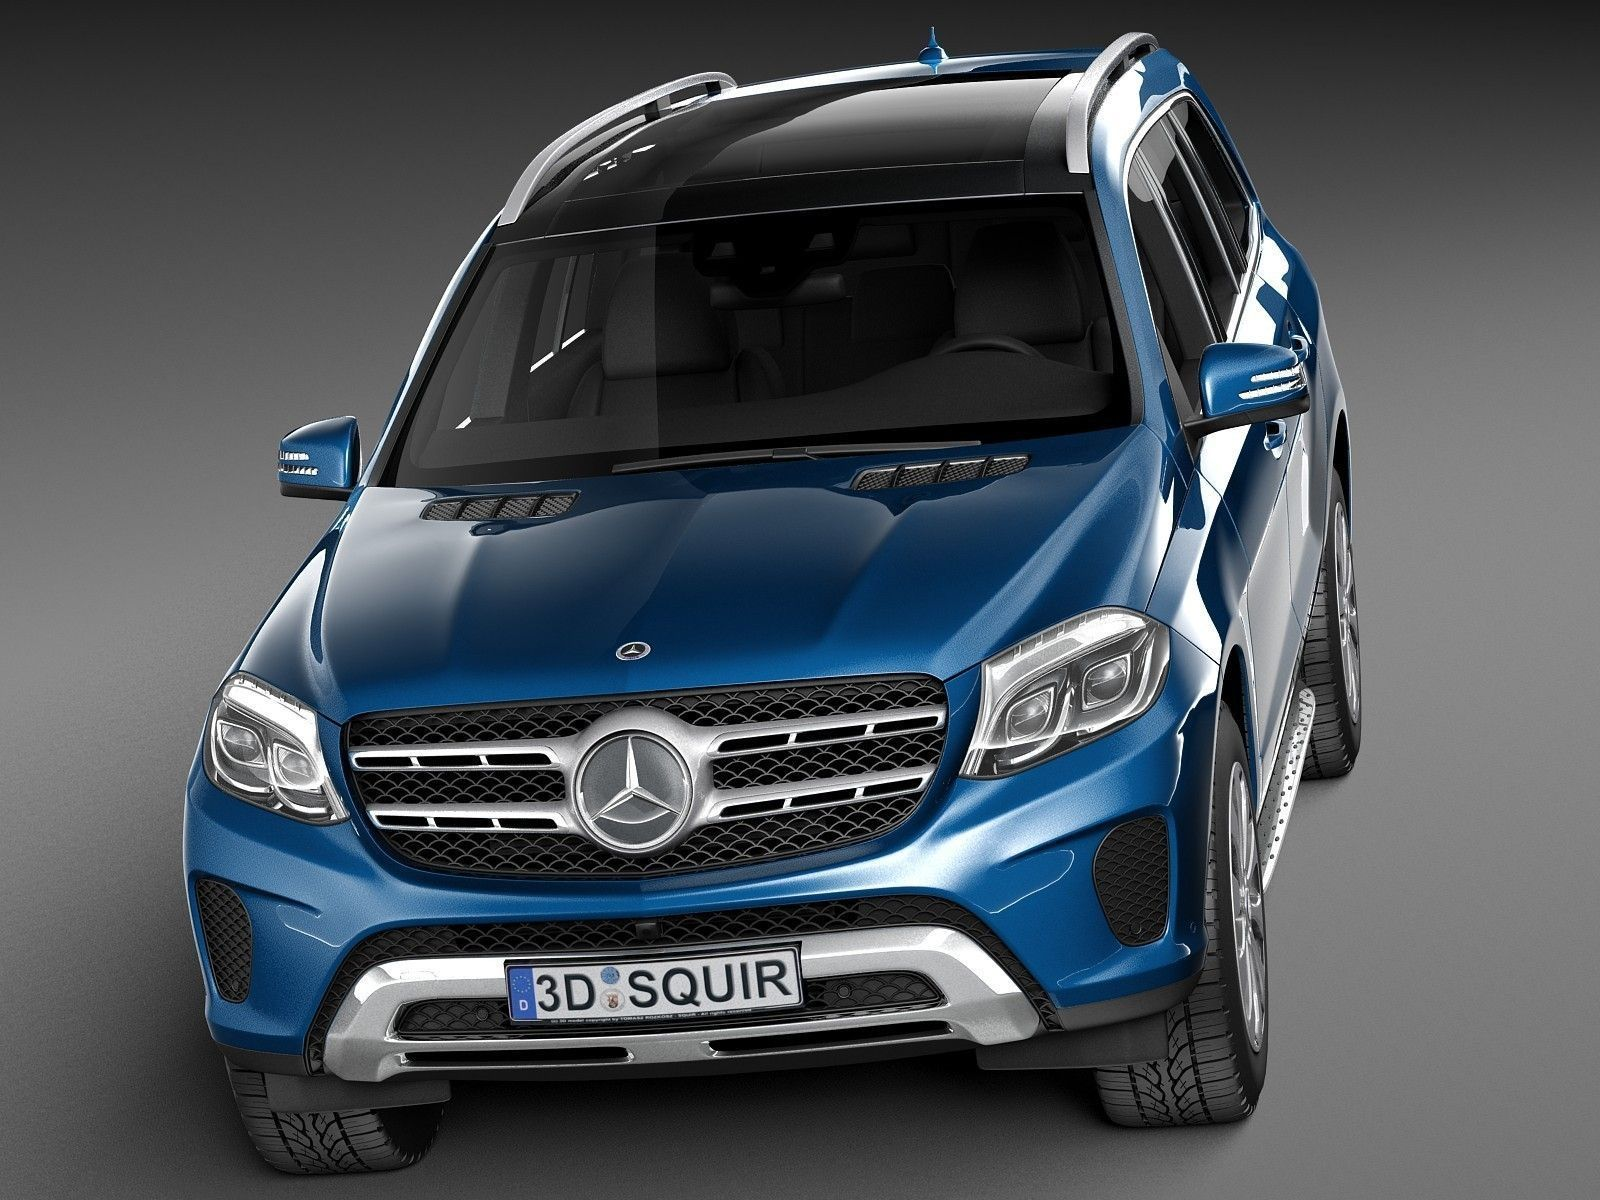 Mercedes benz gls 2017 3d model max obj 3ds fbx c4d for Gls mercedes benz suv